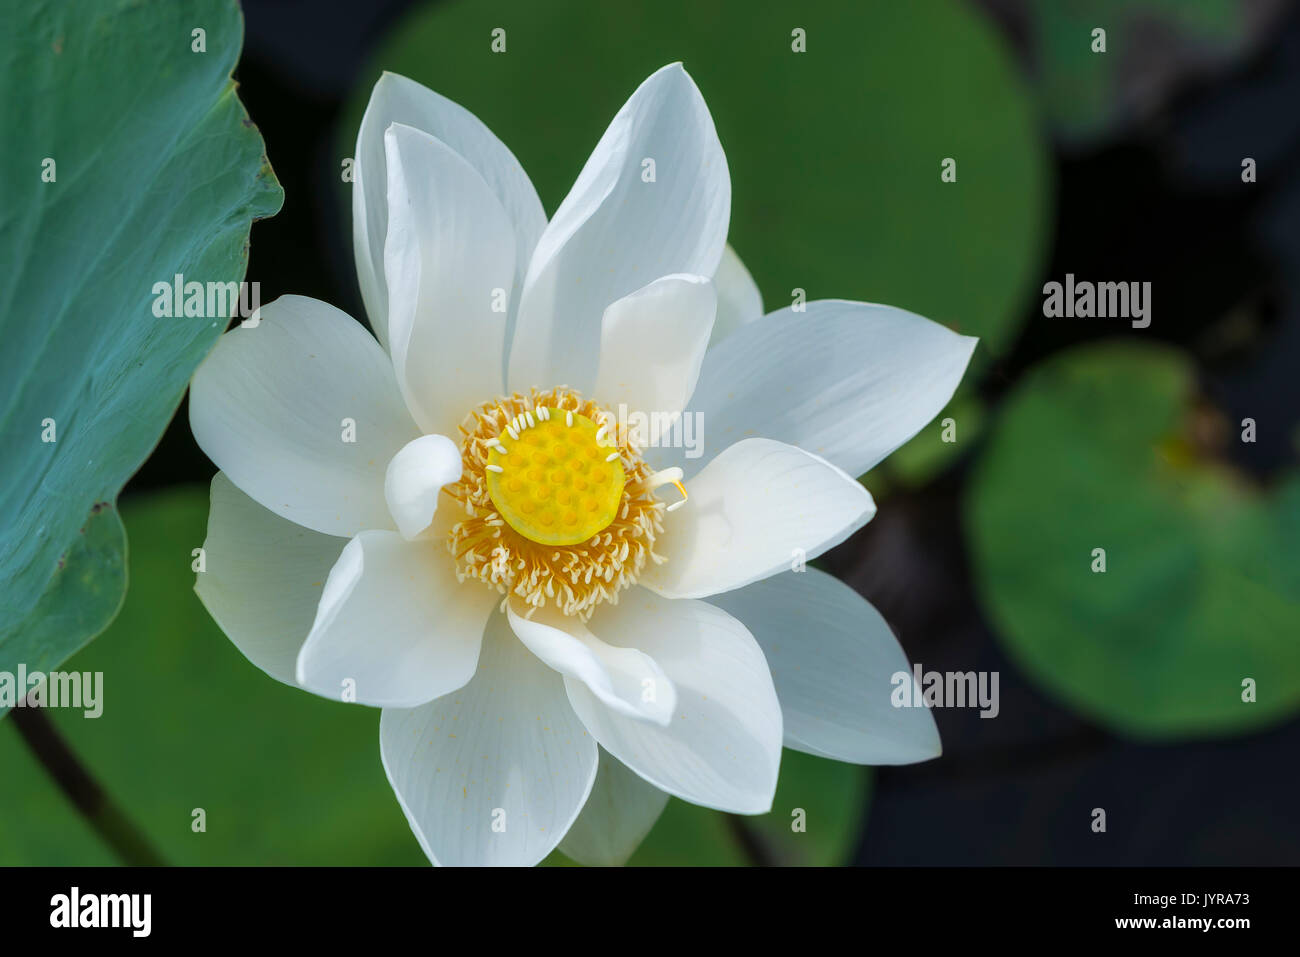 White Lotus Blossoming In The Pond This Is The Flower Symbolizes